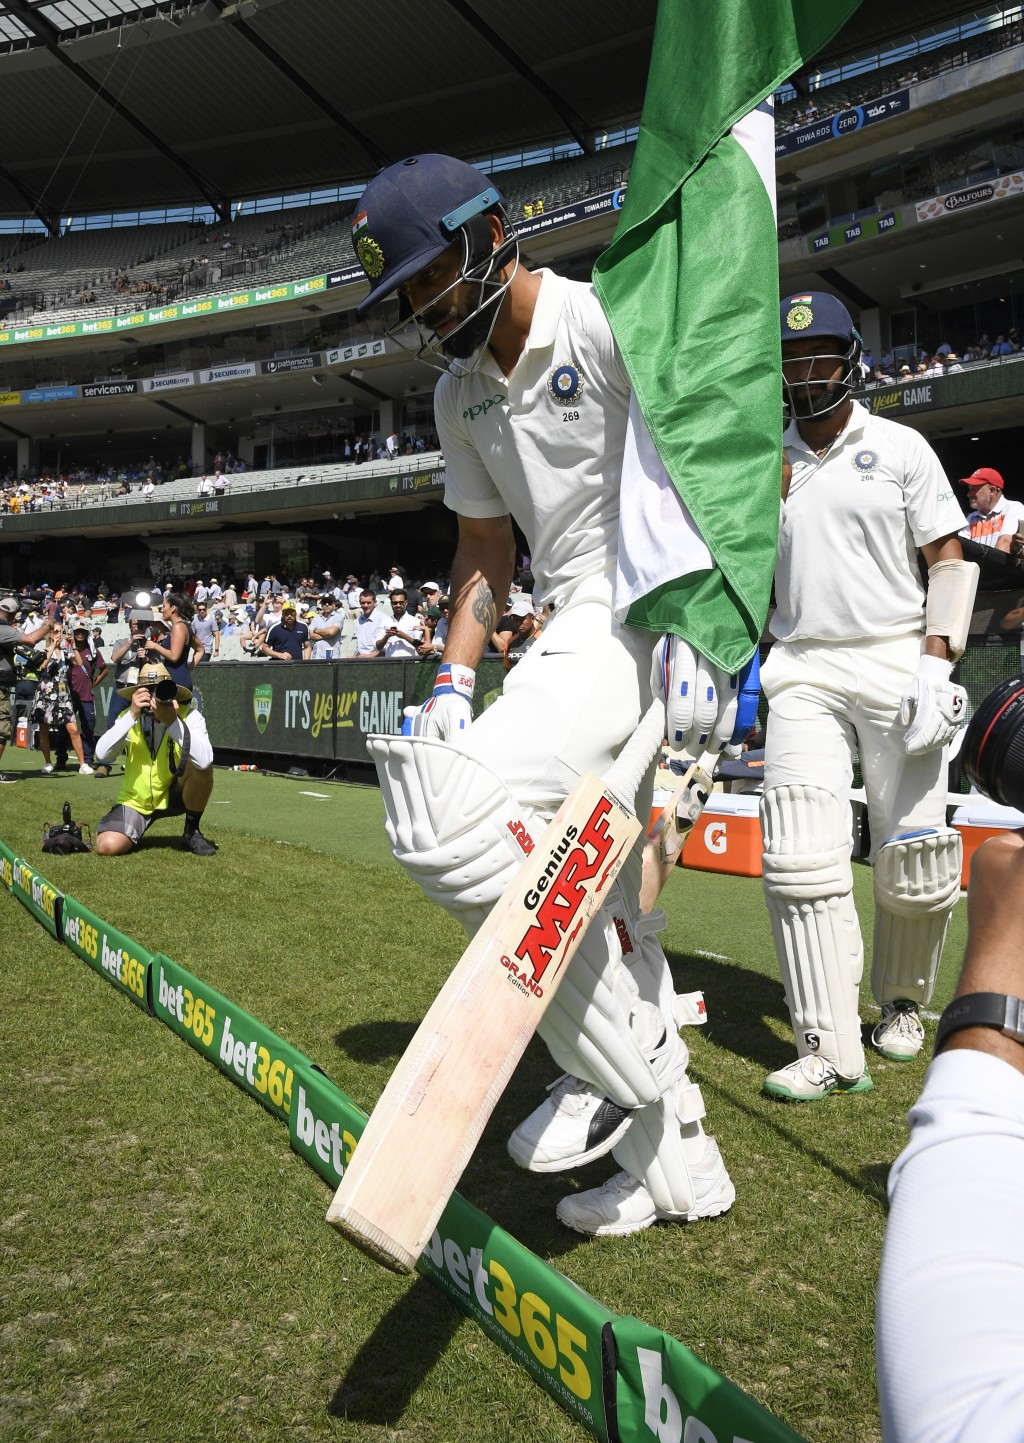 India's India's Virat Kohli, left, and Cheteshwar Pujara right enter the field before play on day two of the third cricket test between India and Aust...